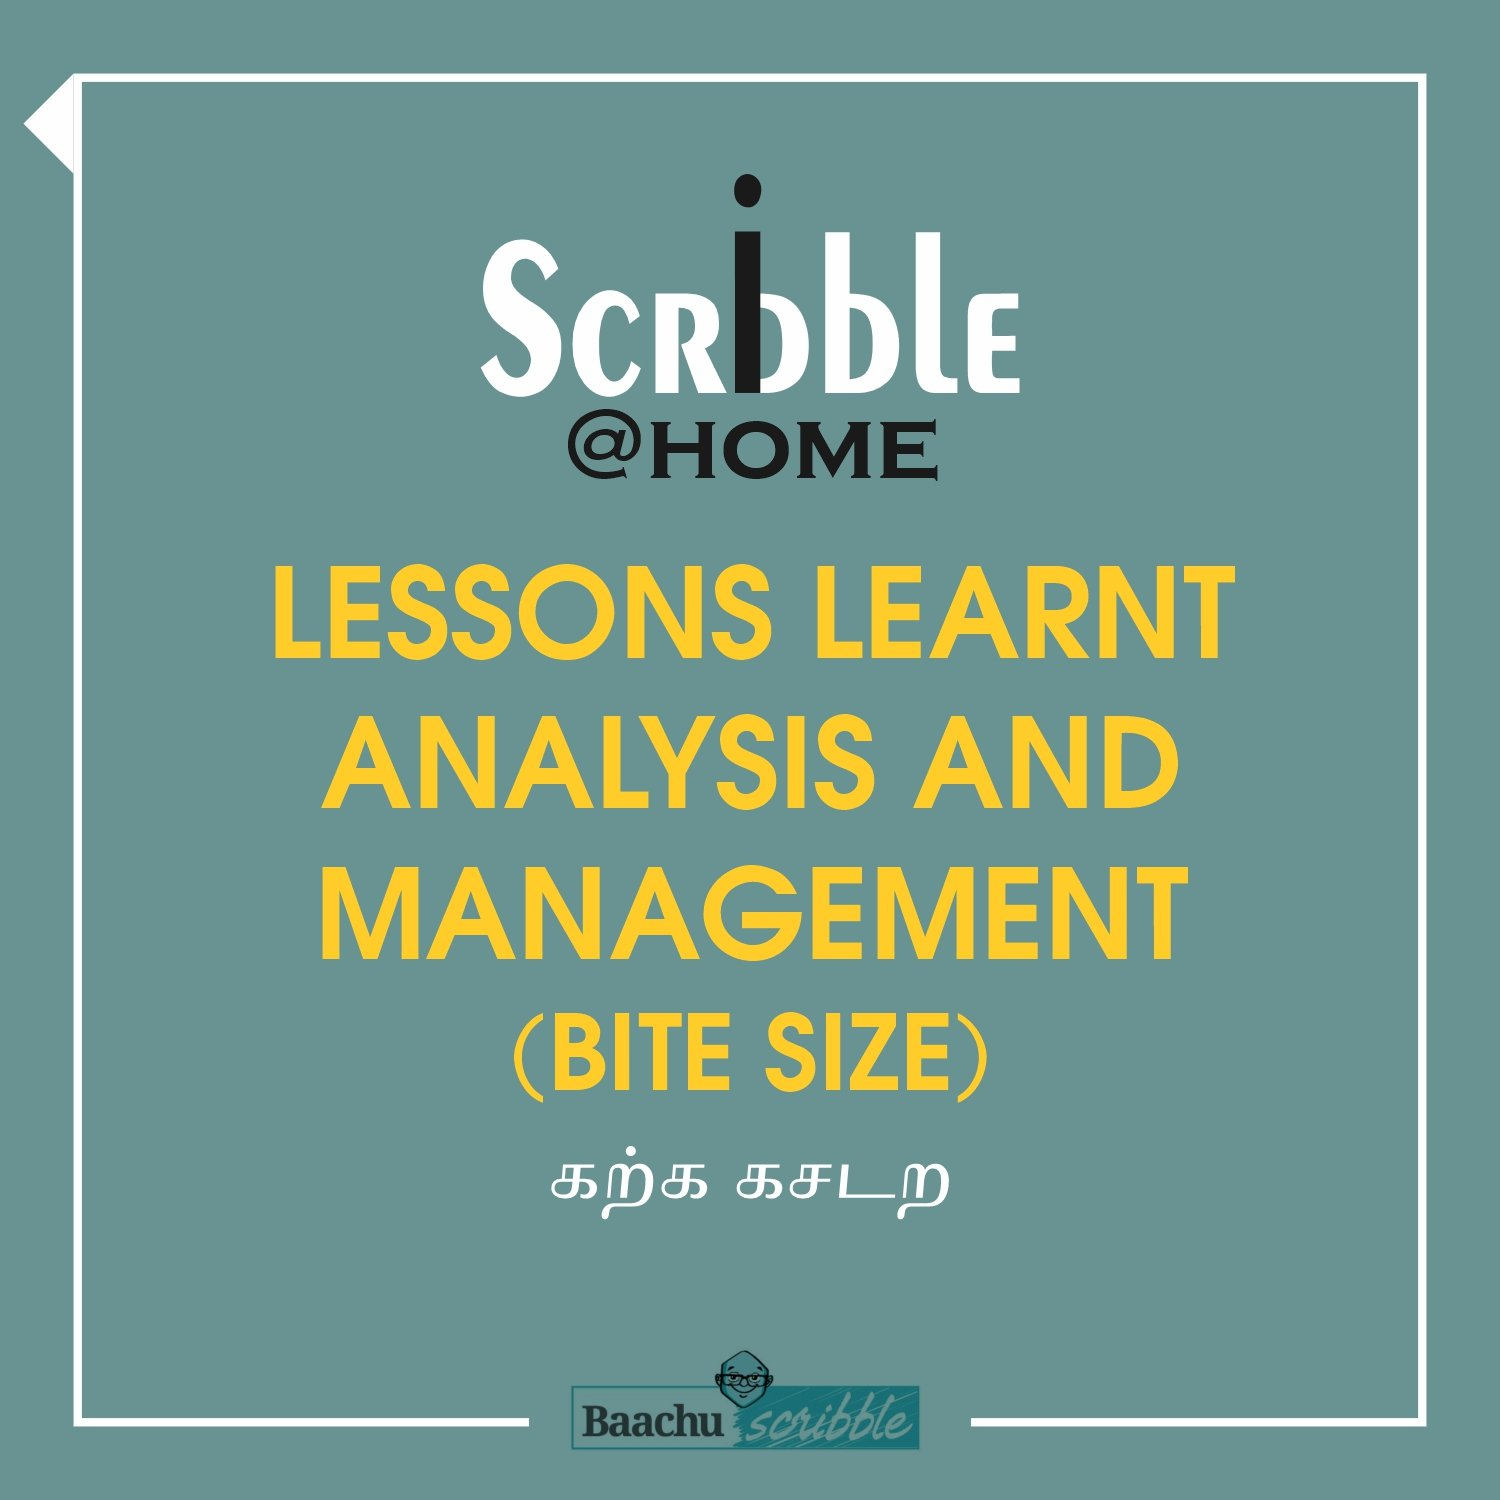 Lessons Learnt Analysis and Management (Bite Size)